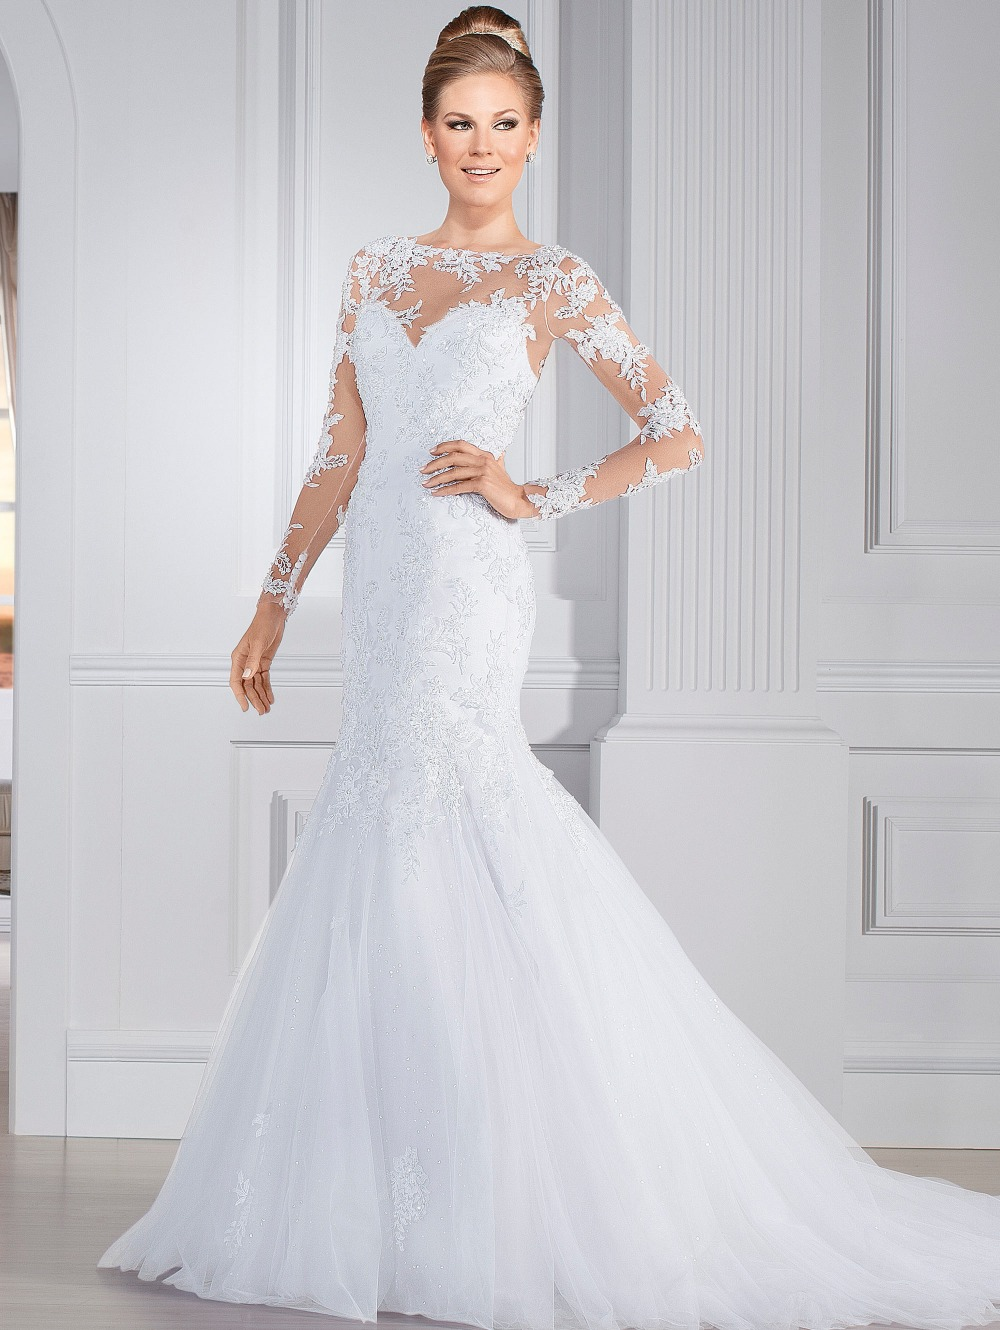 Aliexpress.com : Buy vestido de noiva 2015 Elegant Wedding